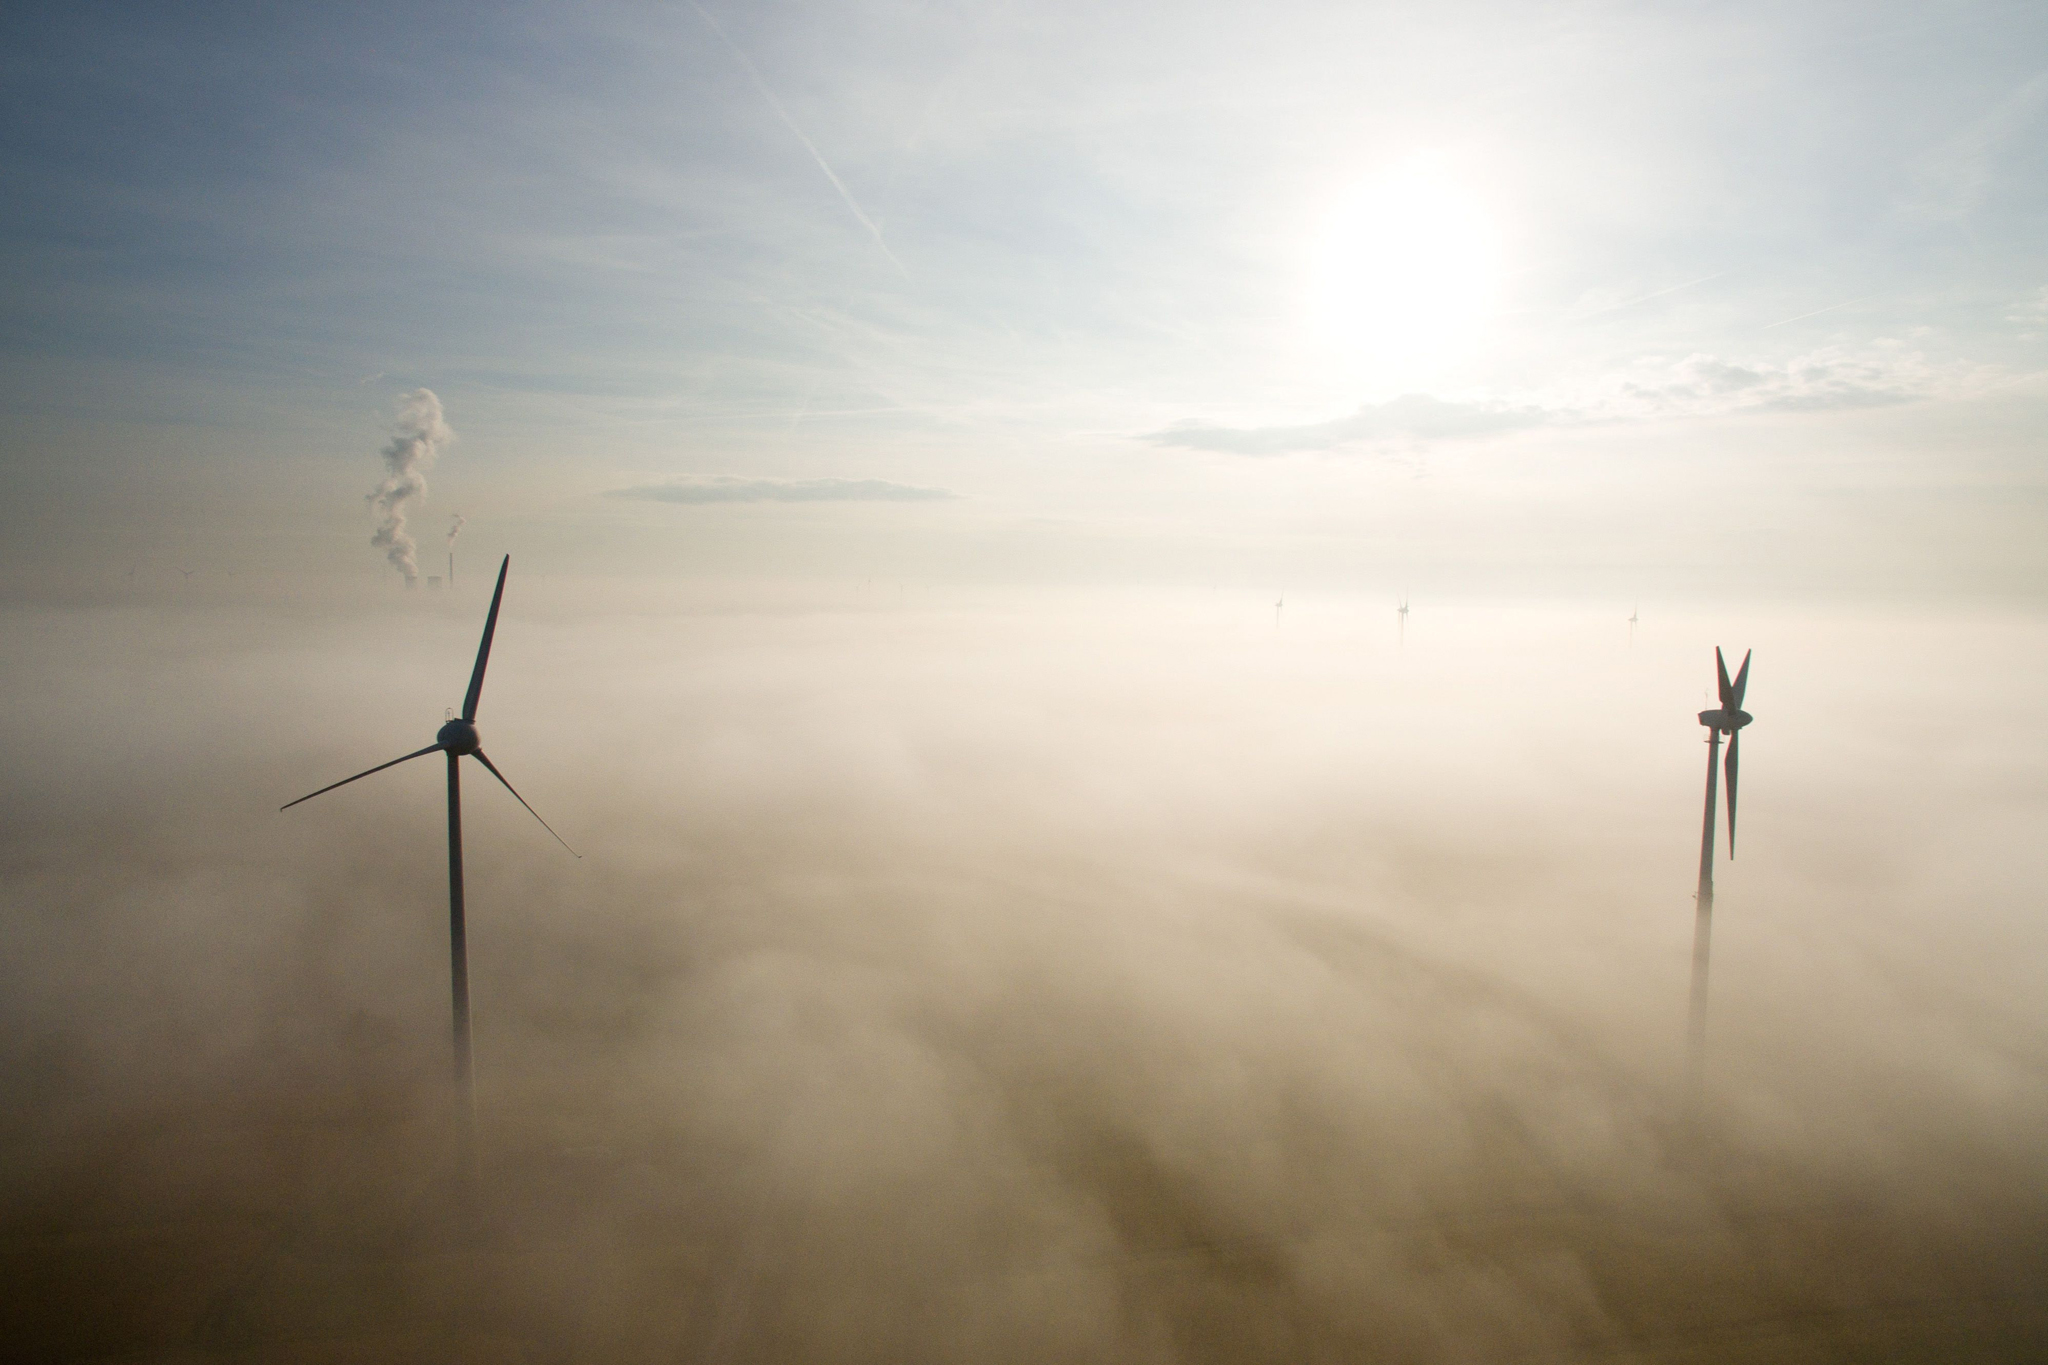 Windmills are seen through the morning mist rising from a field in Sehnde near Hanover, northern Germany